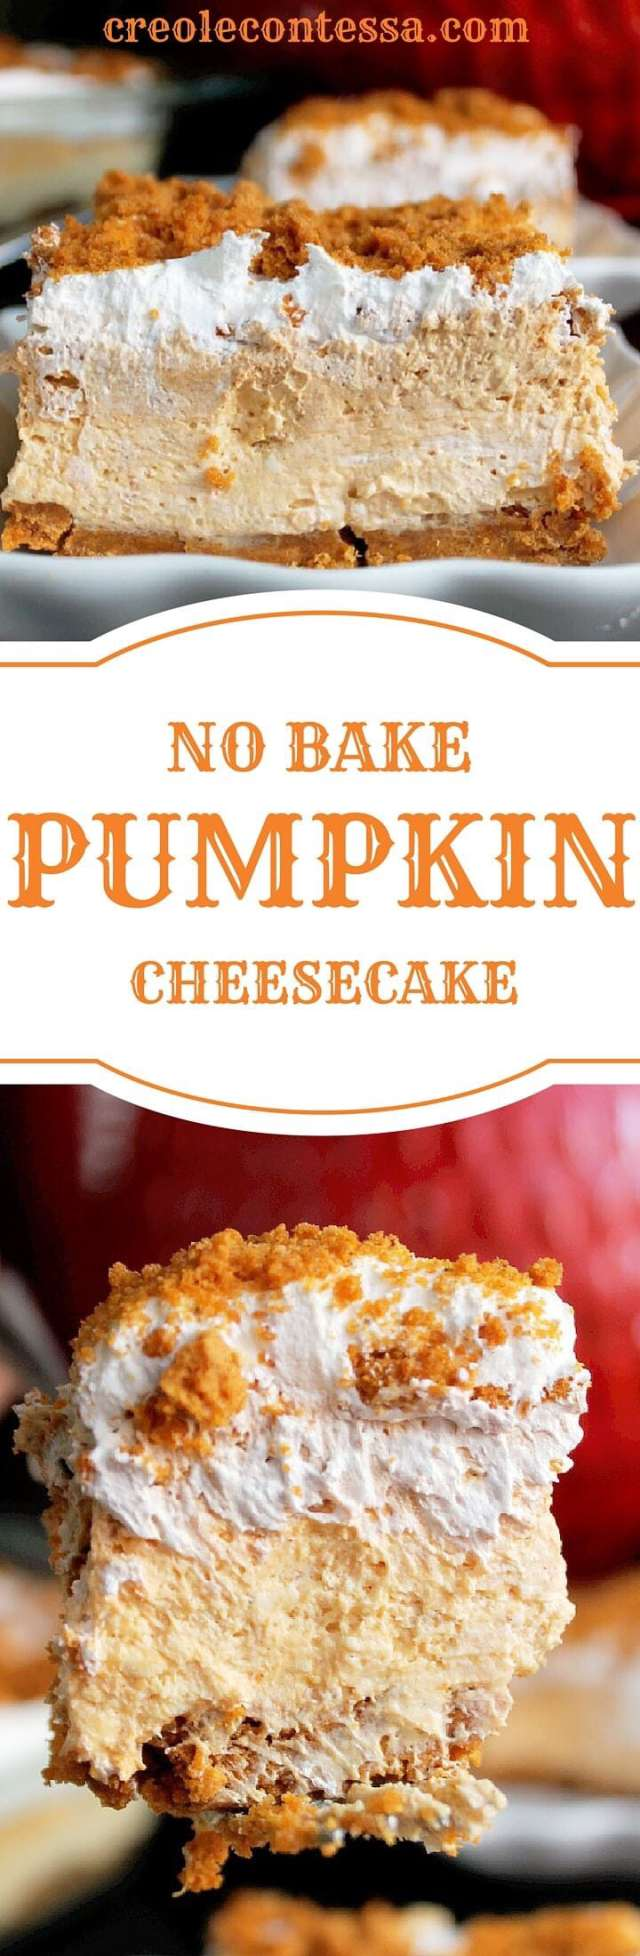 Pumpkin Spice Recipes: No Bake Pumpkin Cheesecake